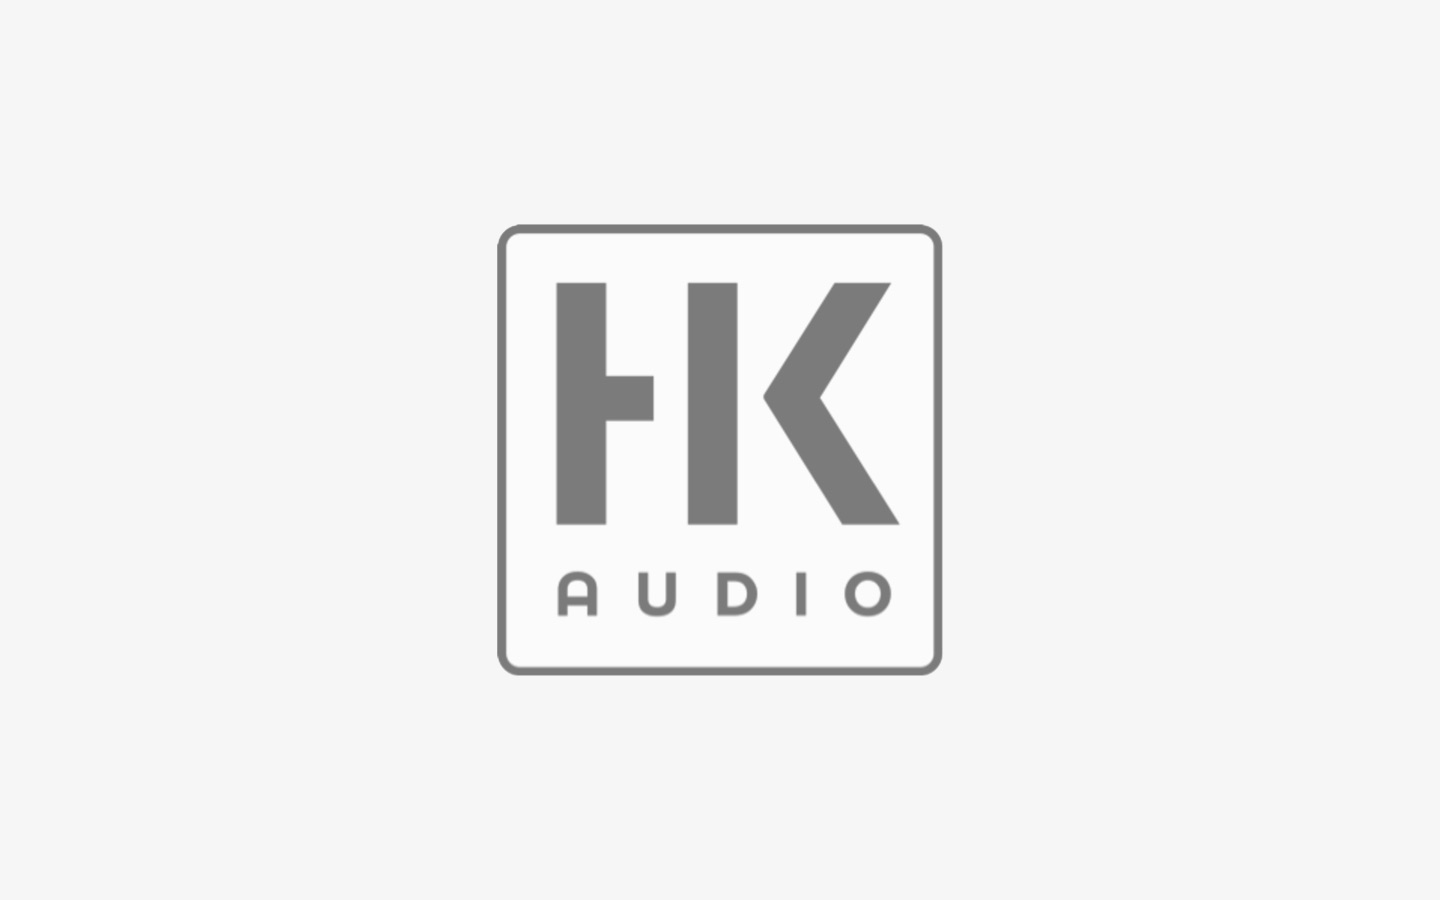 expert-kaelin-partner-hk-audio.jpg